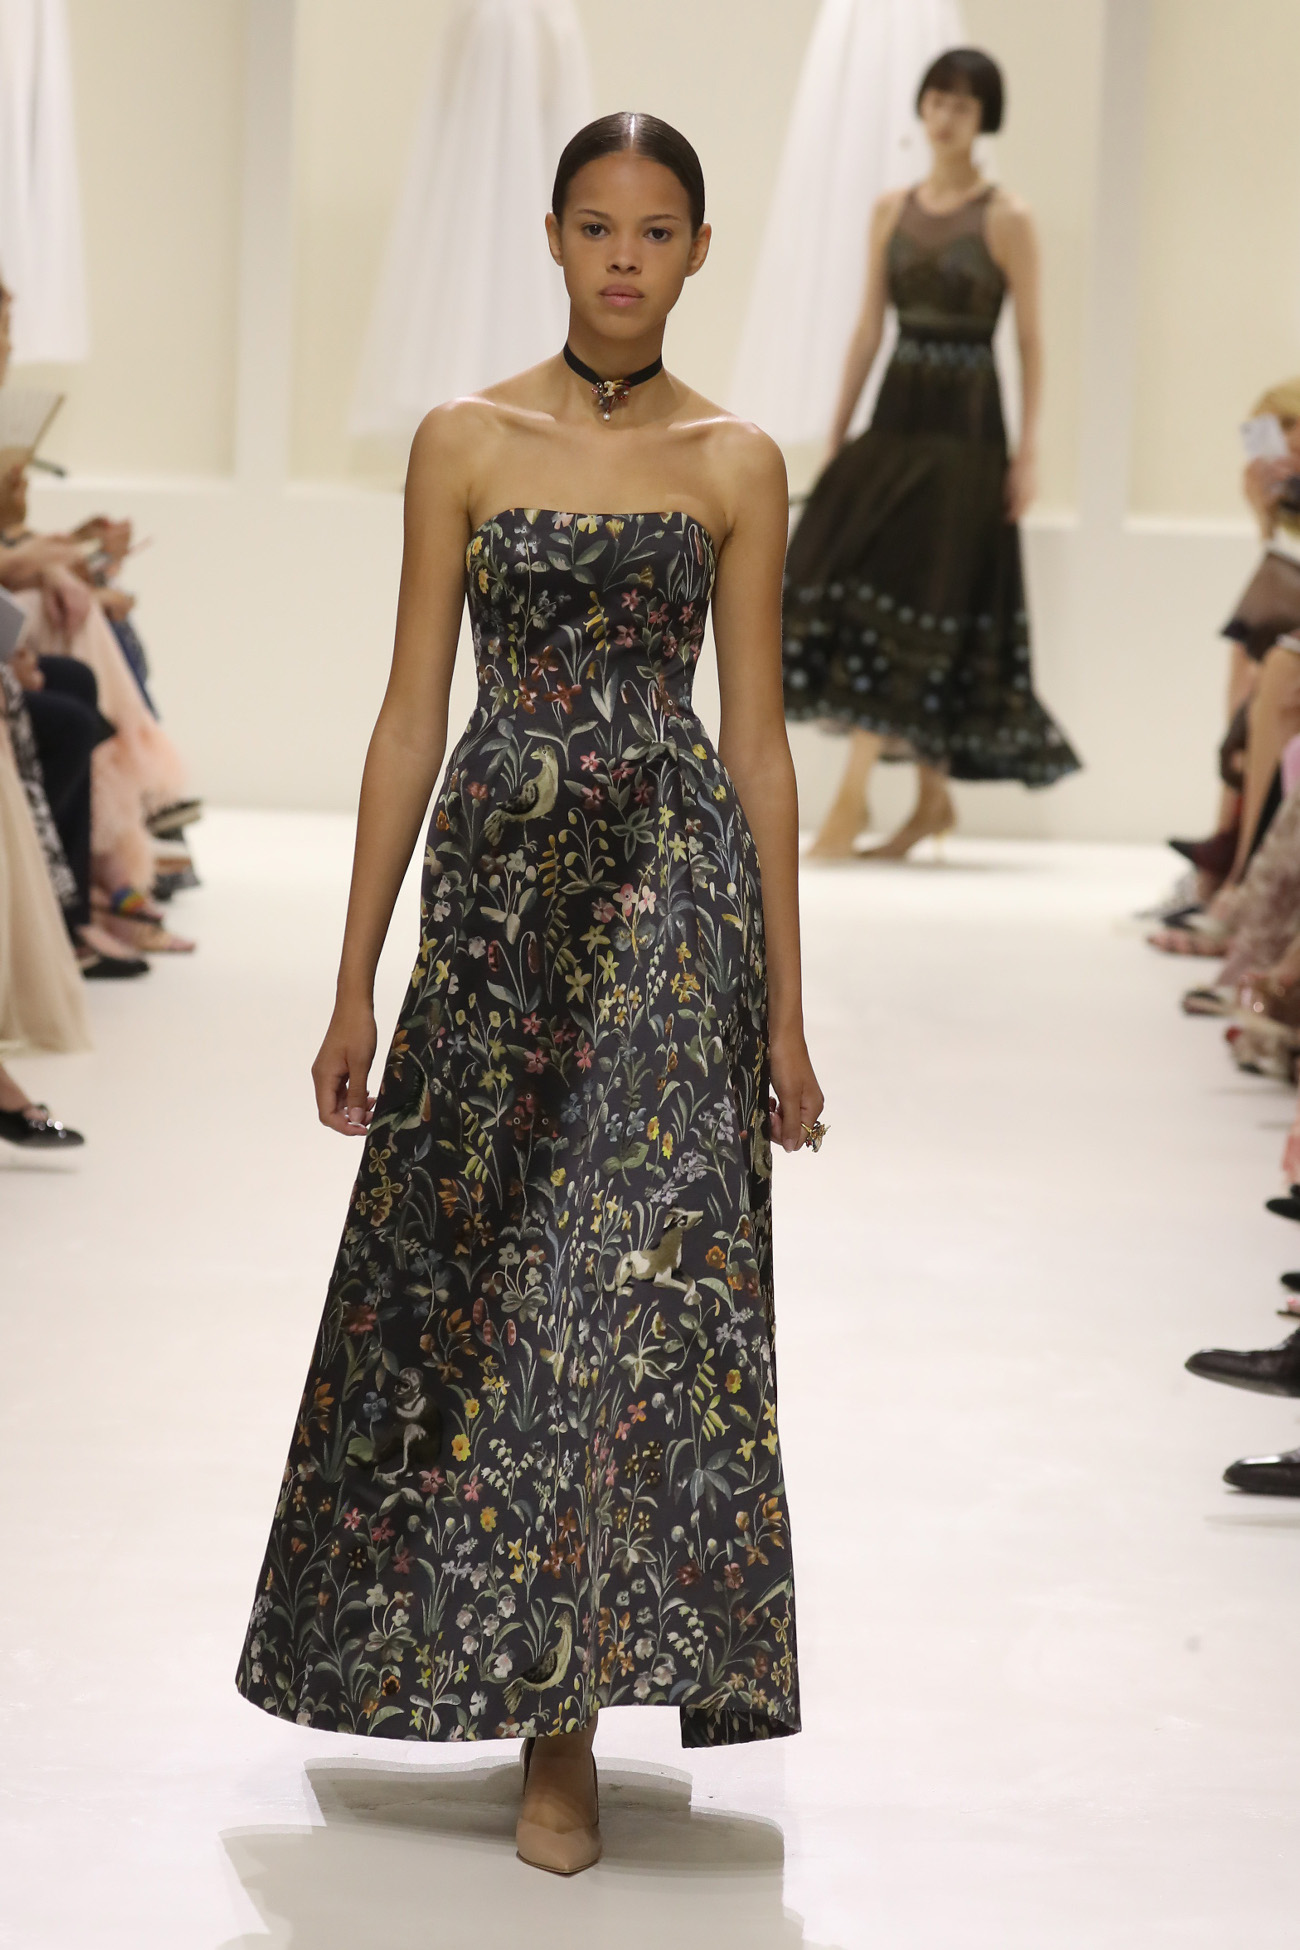 A model walks the runway during the Christian Dior Haute Couture Fall Winter 2018/2019 show as part of Paris Fashion Week on July 2, 2018 in Paris, France.  Pictured:  Ref: SPL5007698 020718 NON-EXCLUSIVE Picture by: Antonio Barros / SplashNews.com  Splash News and Pictures Los Angeles: 310-821-2666 New York: 212-619-2666 London: 0207 644 7656 Milan: +39 02 4399 8577 photodesk@splashnews.com  World Rights